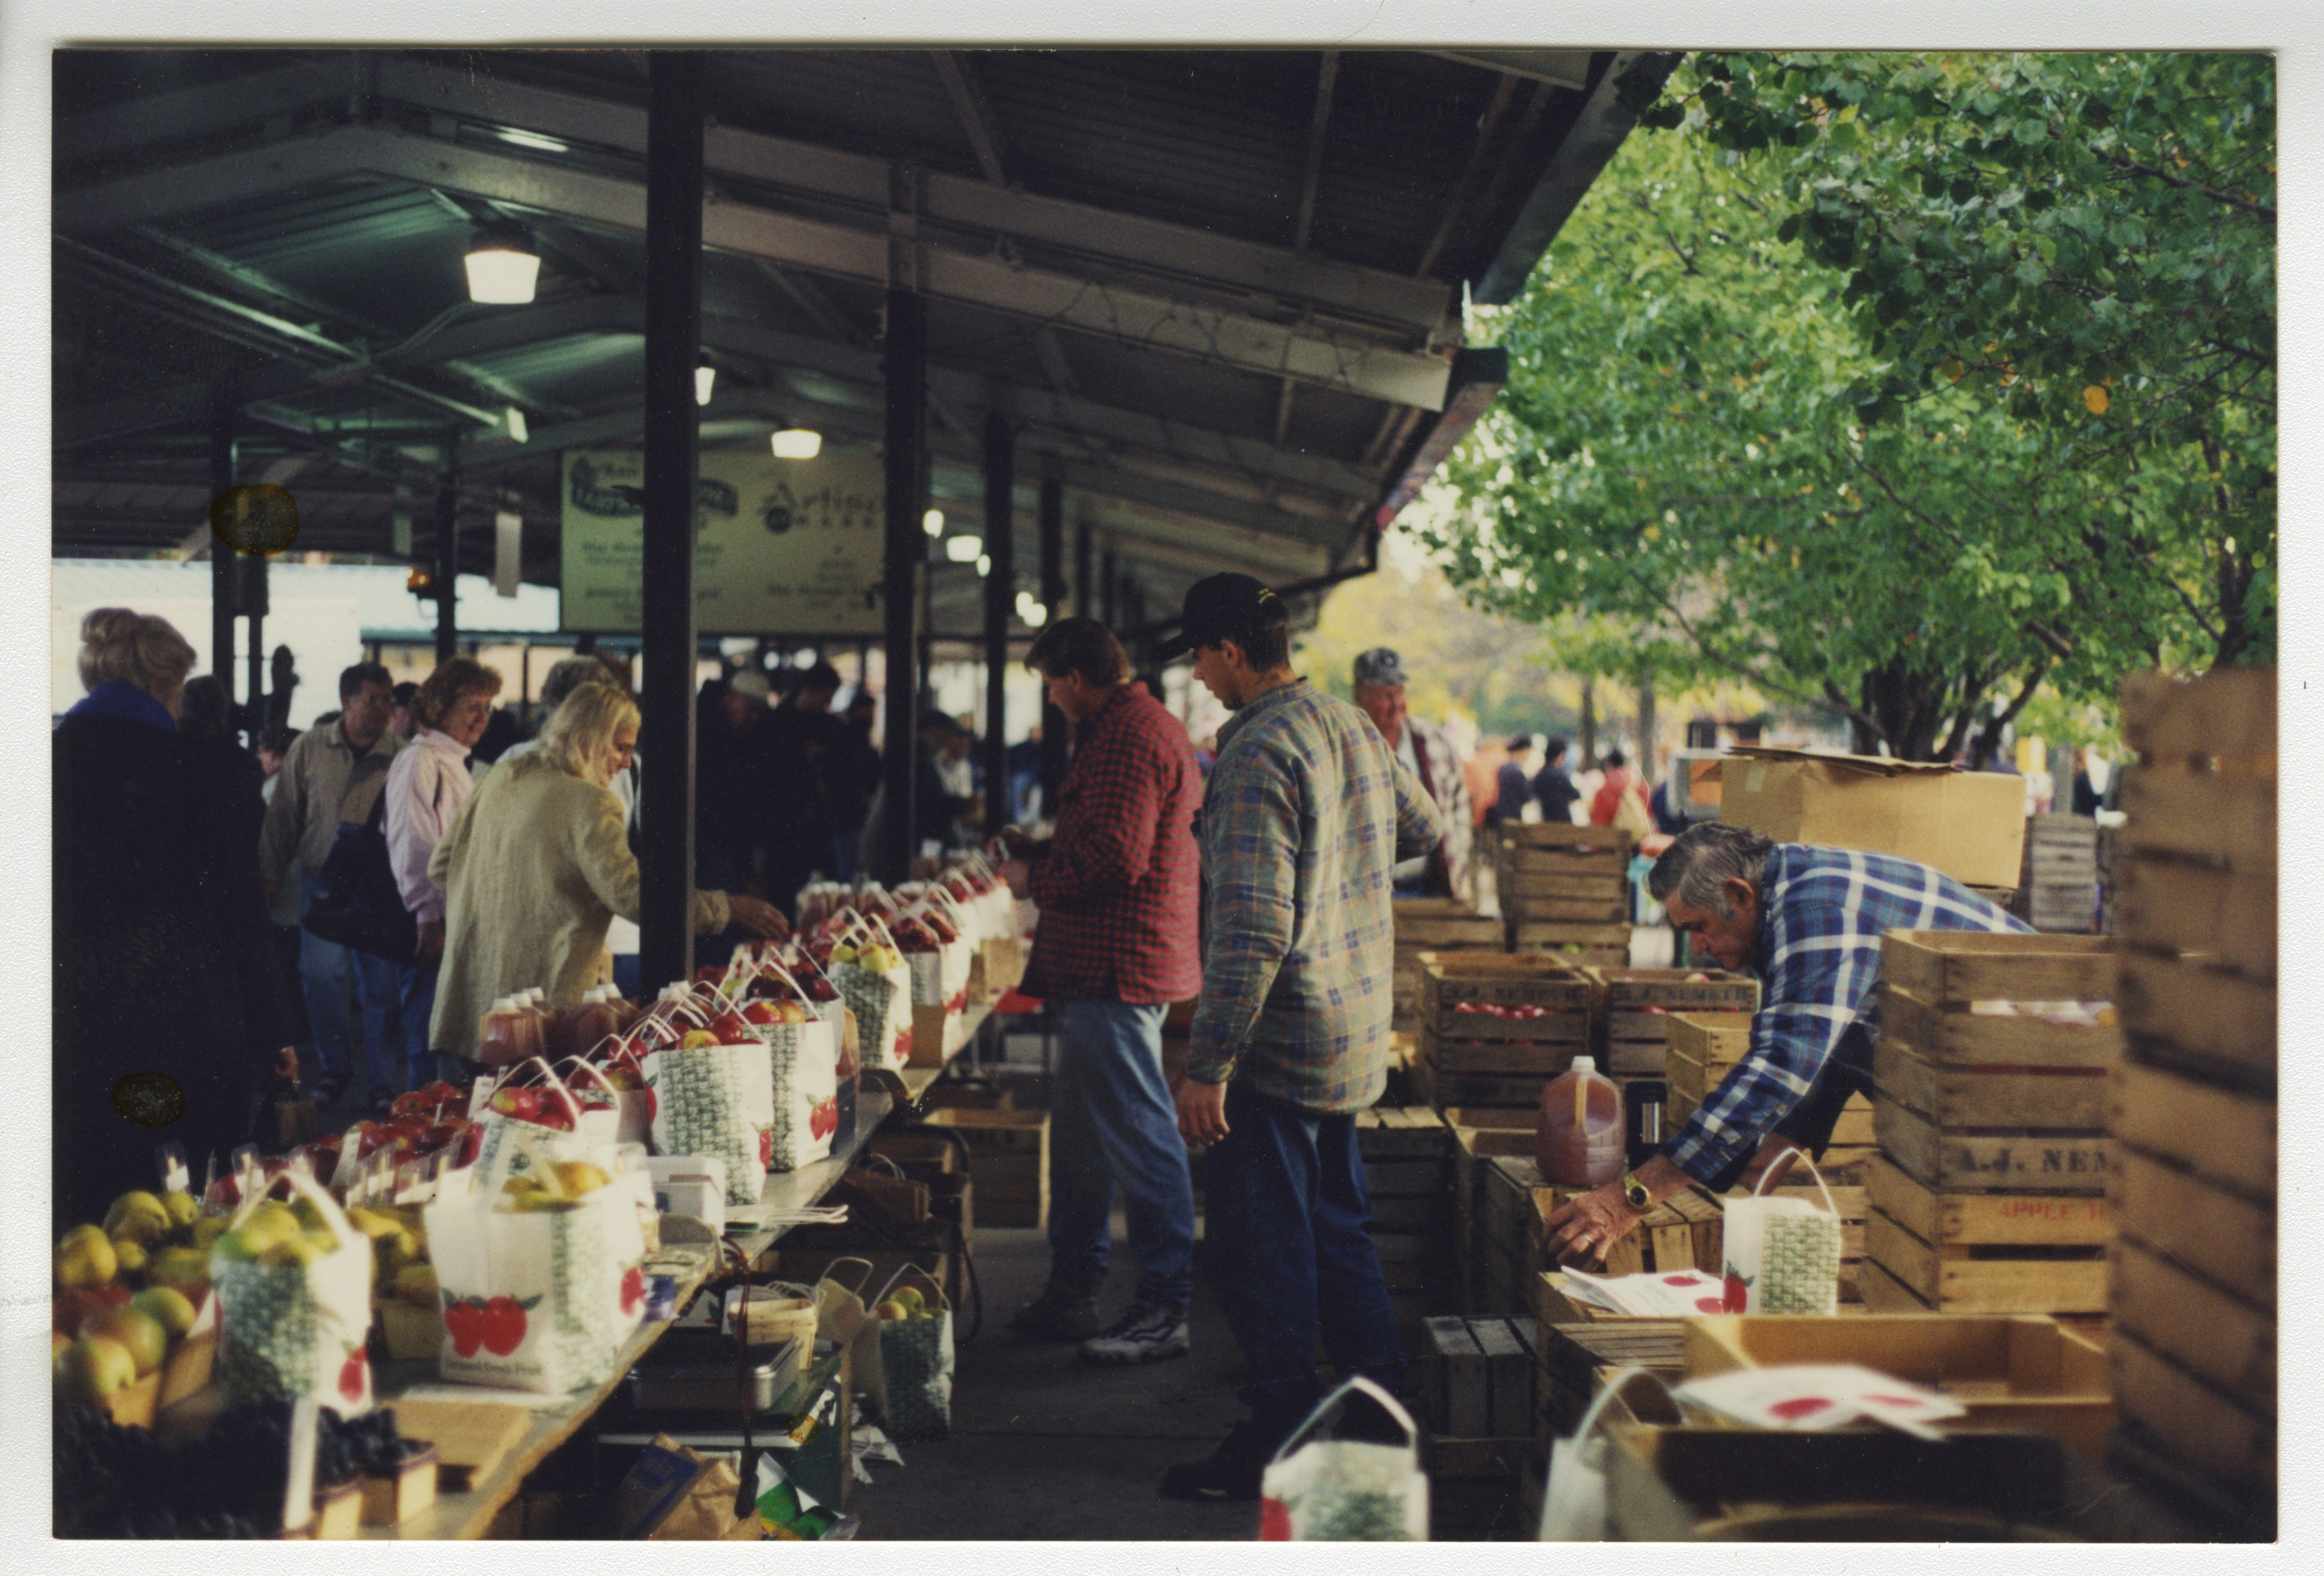 Nemeth Orchards Produce at the Ann Arbor Farmers Market, October 1997 image